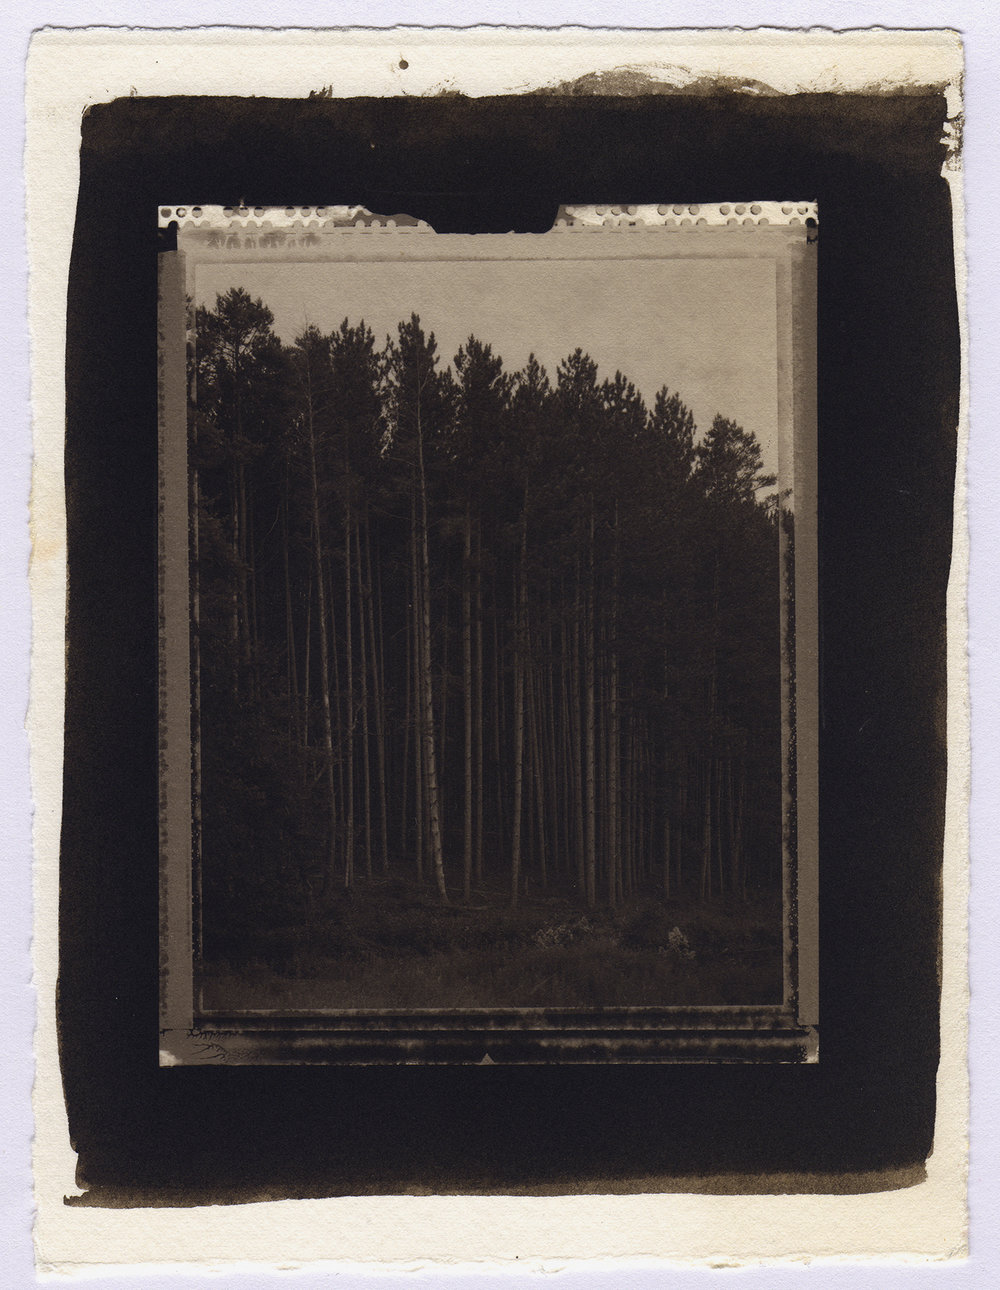 """Tall Pines, Delaware Water Gap, 2004"" Platinum print from 4X5 Polaroid Type 55 negative on Arches watercolor paper"